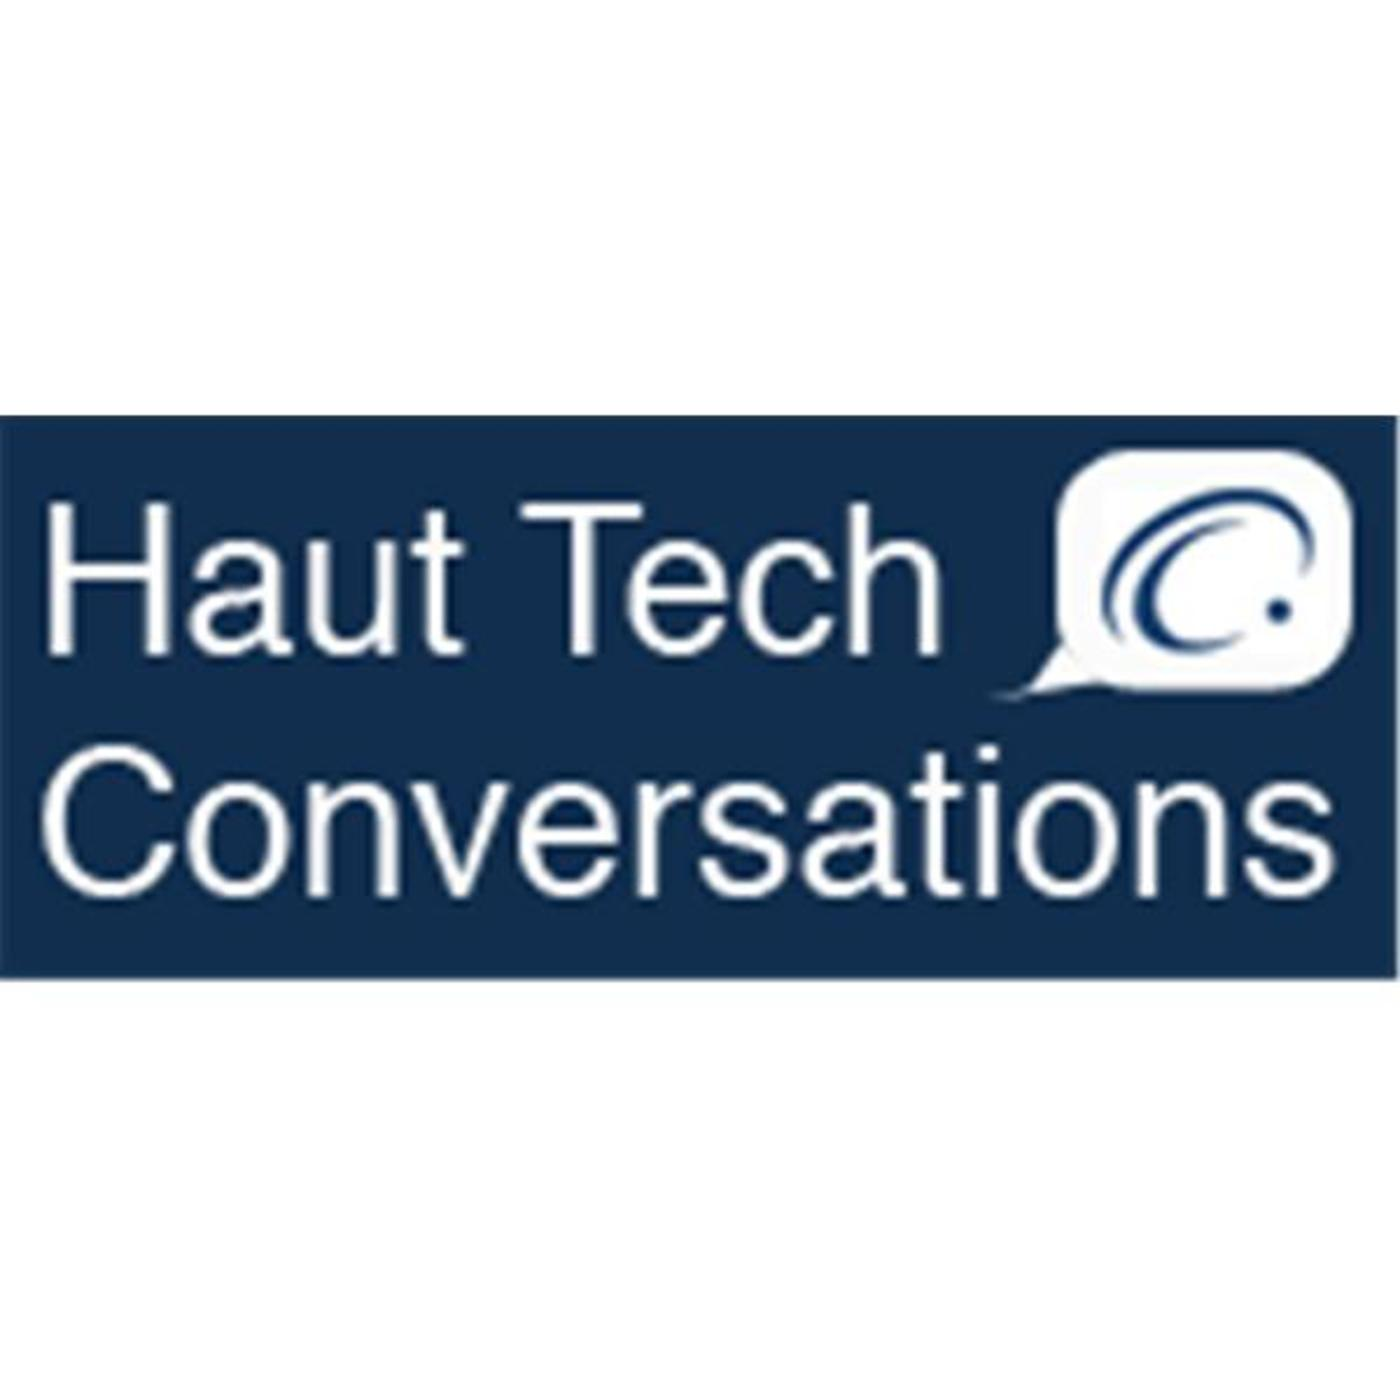 Haut Tech Conversations